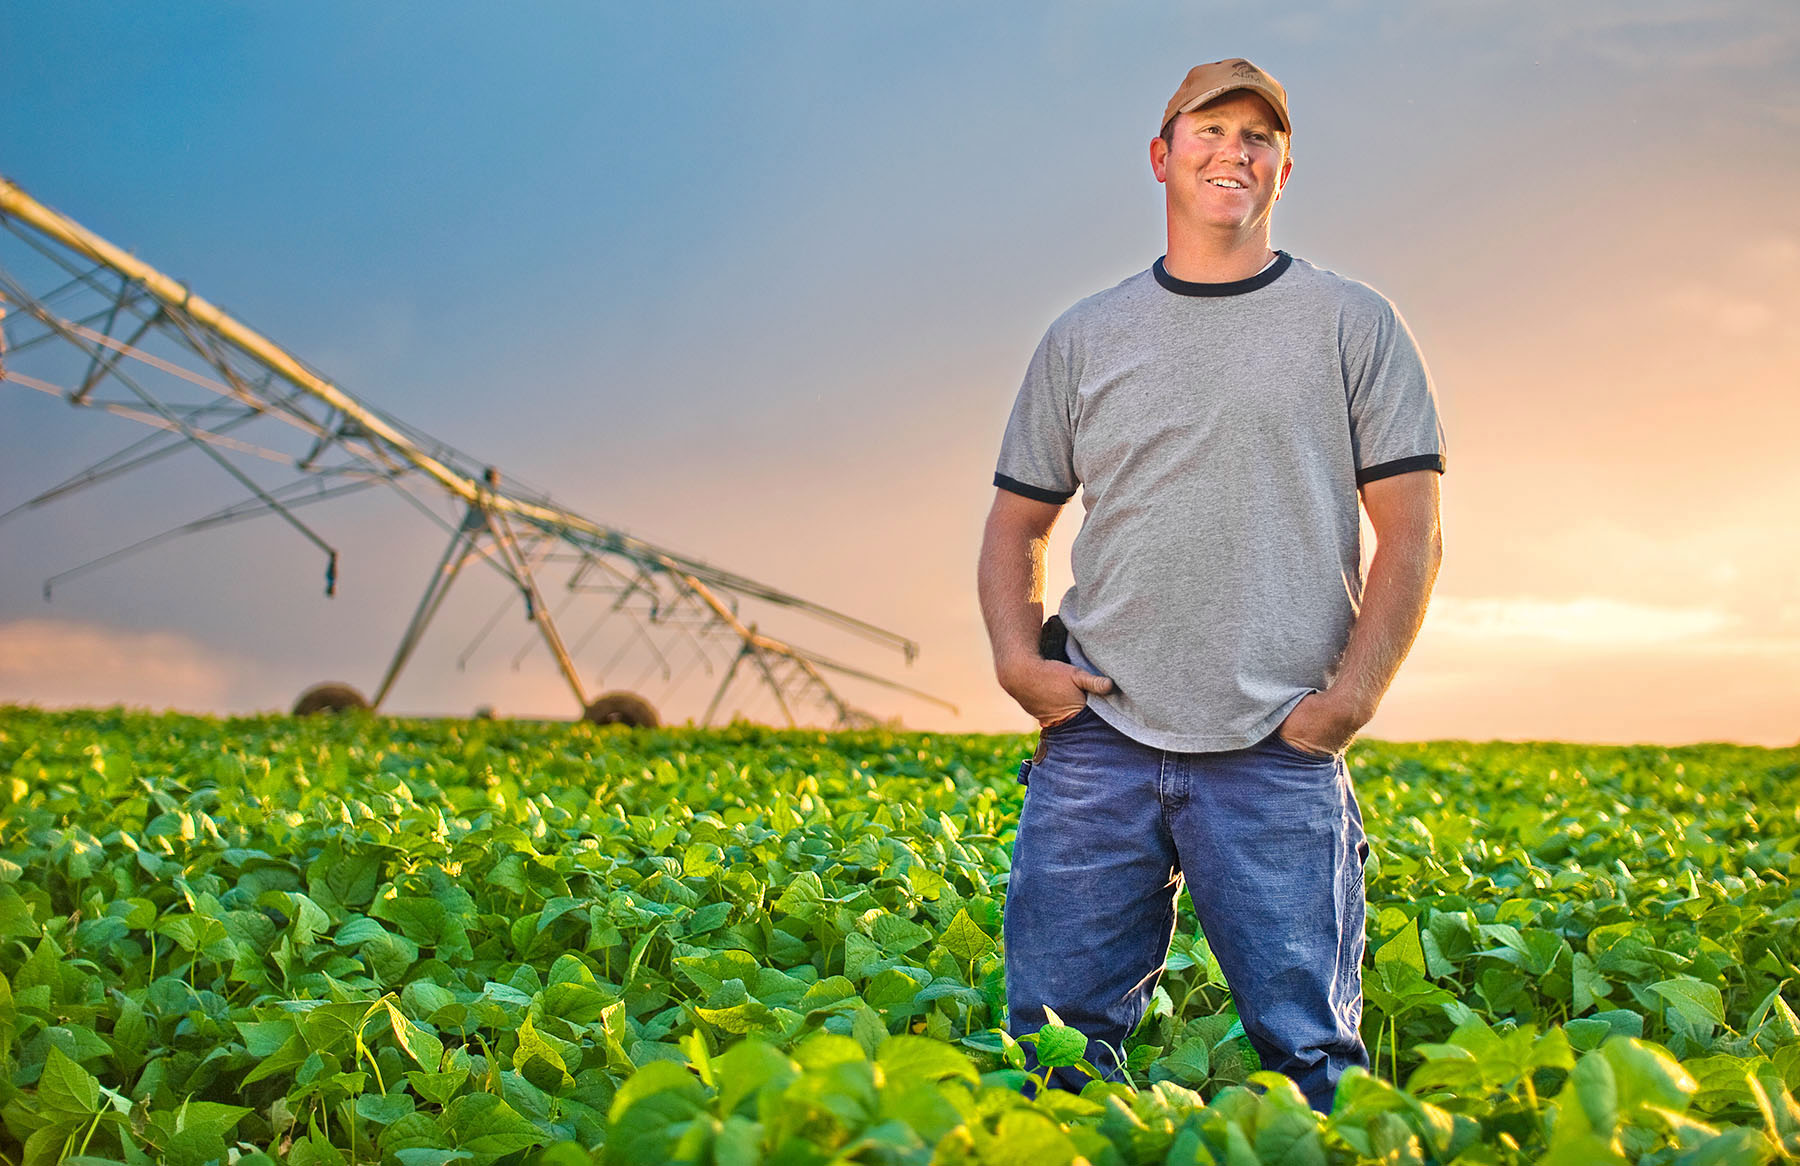 Farmer standing in a field of soybeans